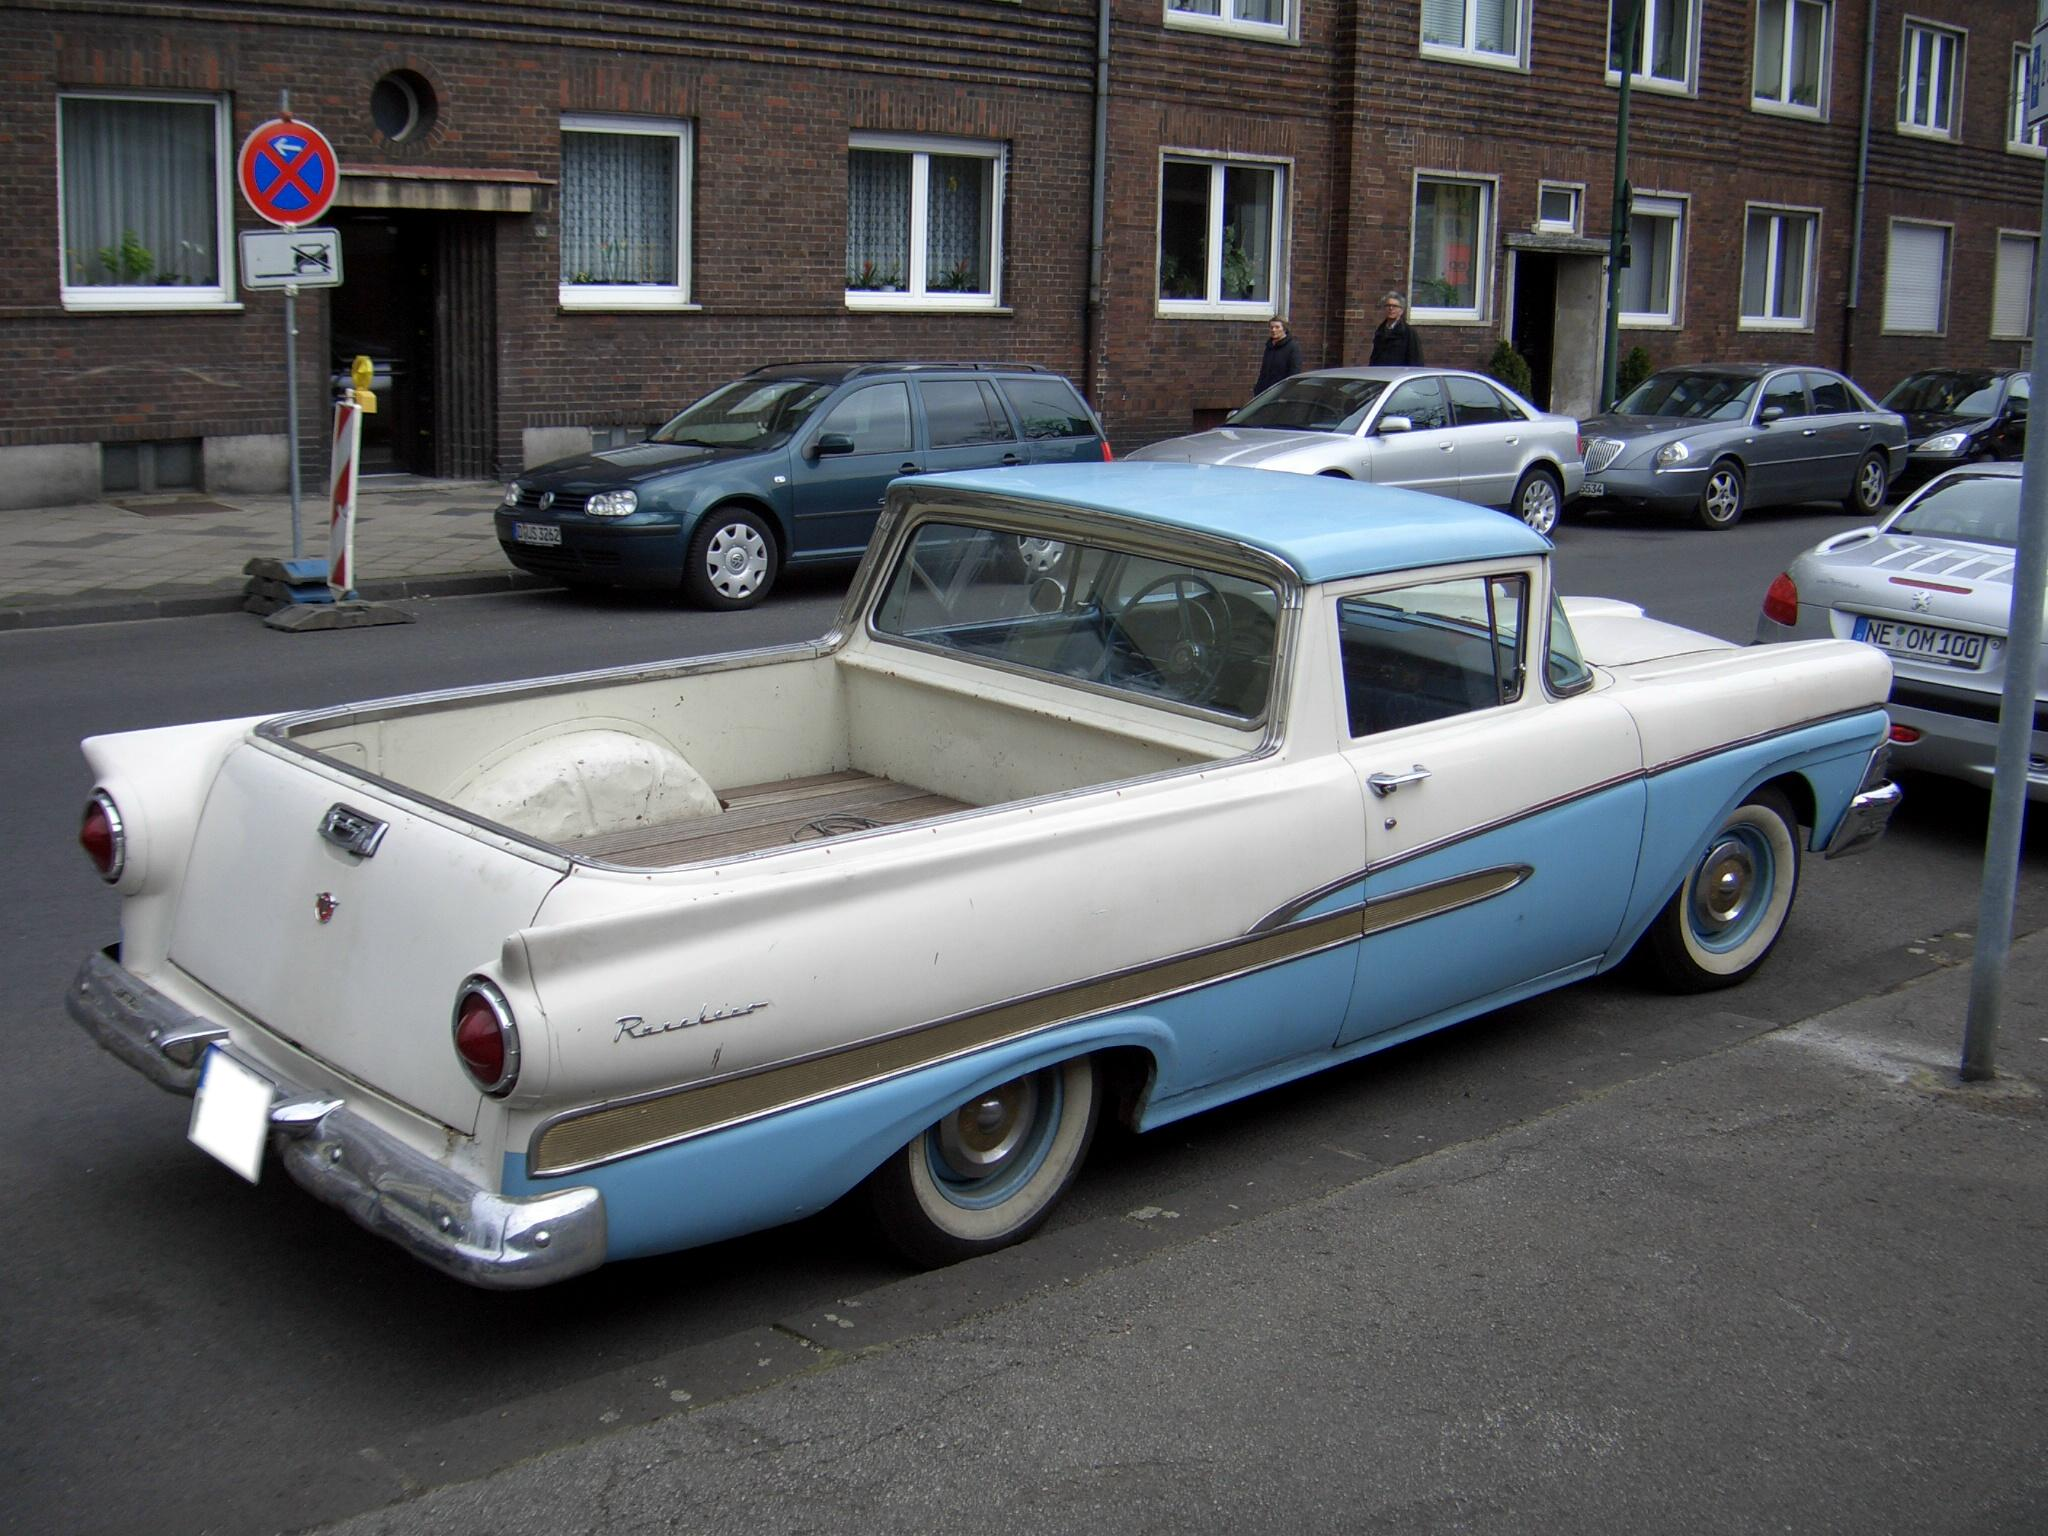 19 1959 ford ranchero for sale craigslist file ford ranchero 1958 backright 2006 04 08 - 1958 Ford Ranchero For Sale